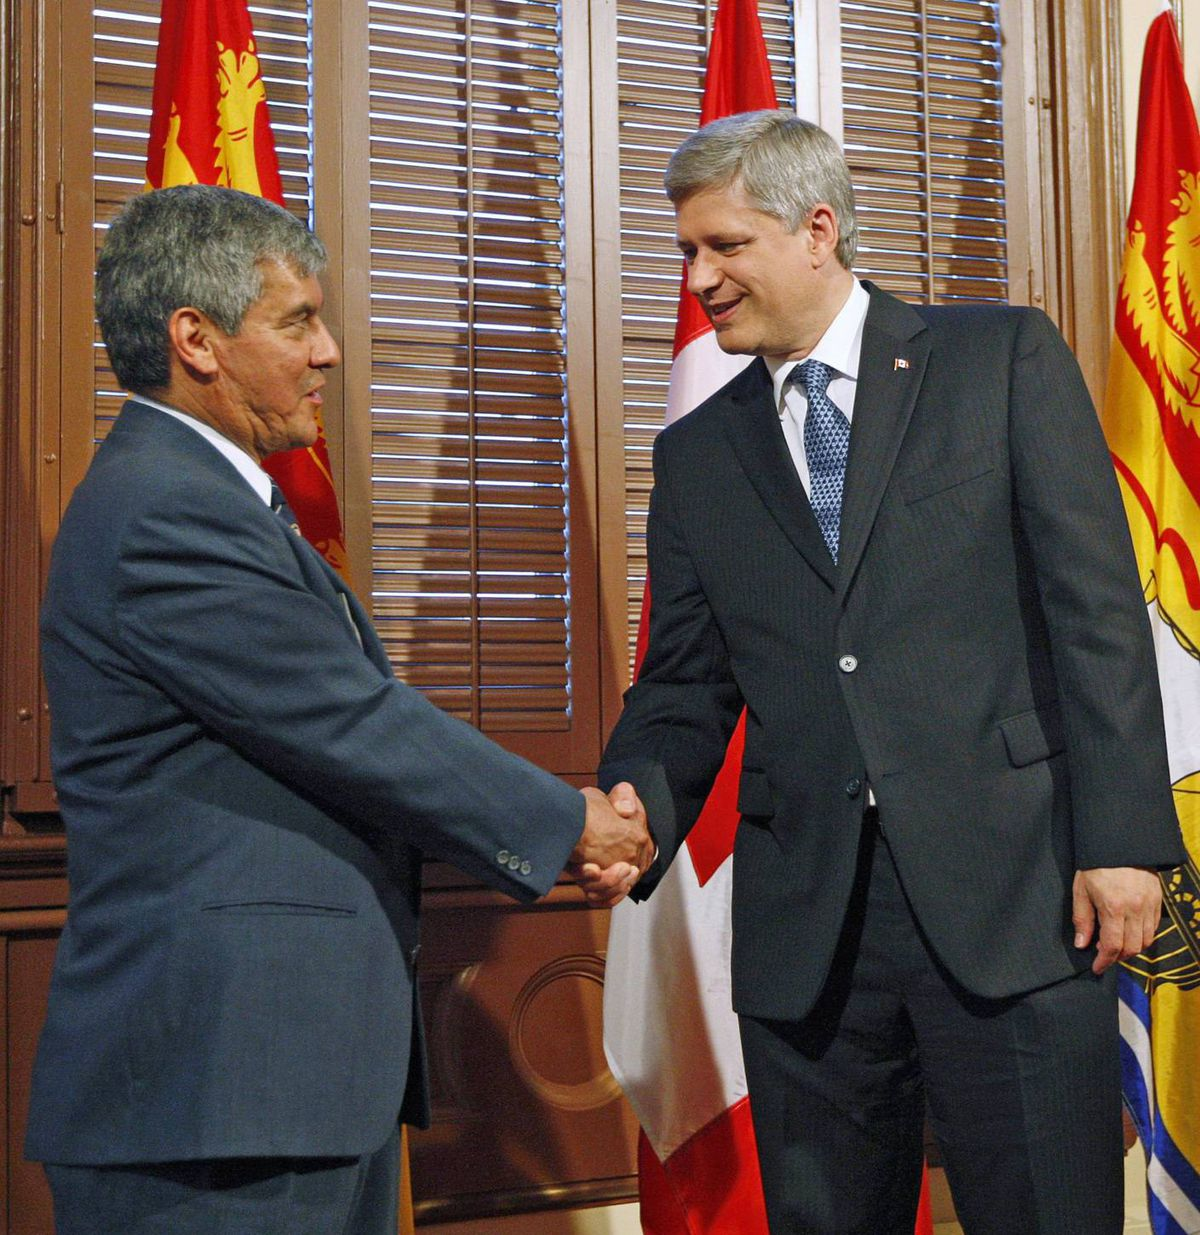 Stephen Harper shakes hands with New Brunswick's incoming lieutenant-governor, Graydon Nicholas, during a meeting in the Prime Minister's Langevin Block office. Mr. Harper also named a new chief justice of the Federal Court of Appeal on Sept. 10, 2009.